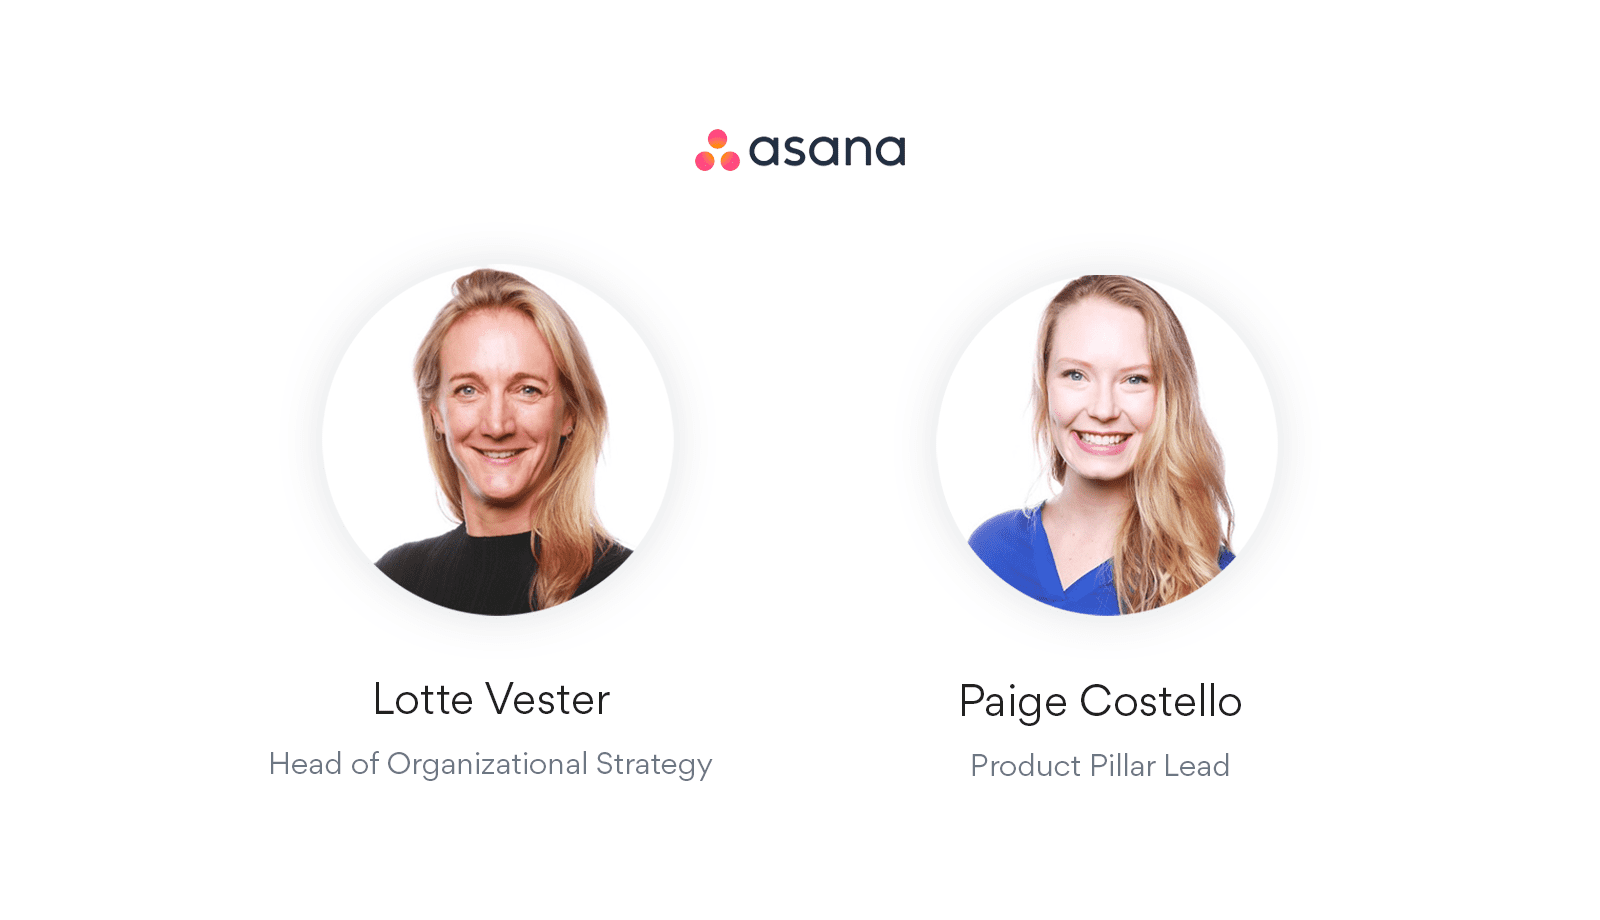 How Asana creates organizational alignment with goals